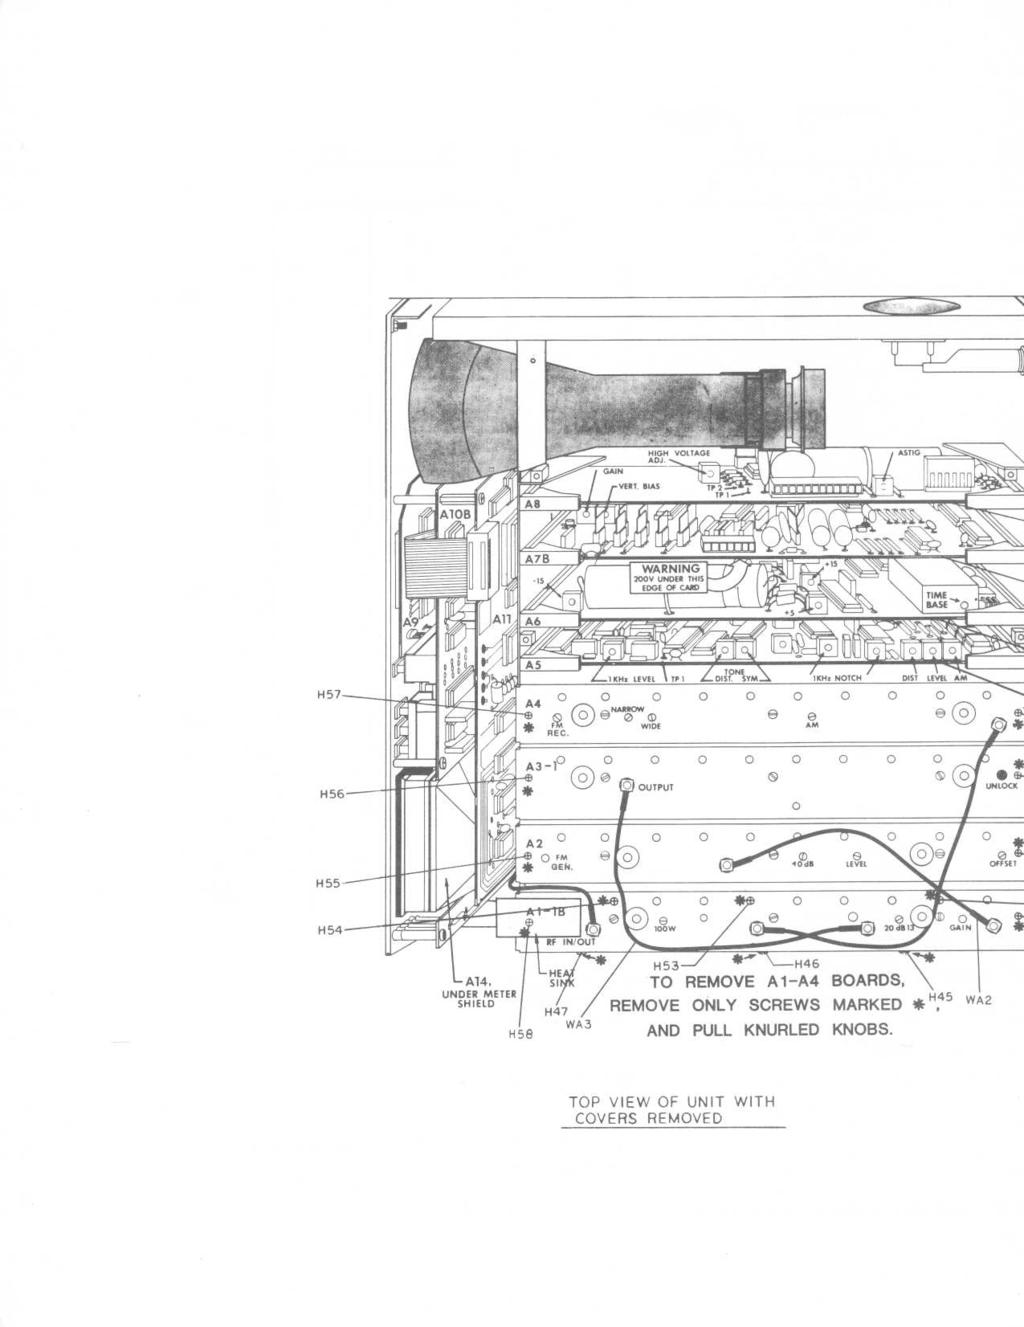 Ct Systems Inc Instruction Manual Model 3000b Communications Se Fuse Panelcar Wiring Diagram Page 408 H53 J H46 To Remove Al A4 Boards